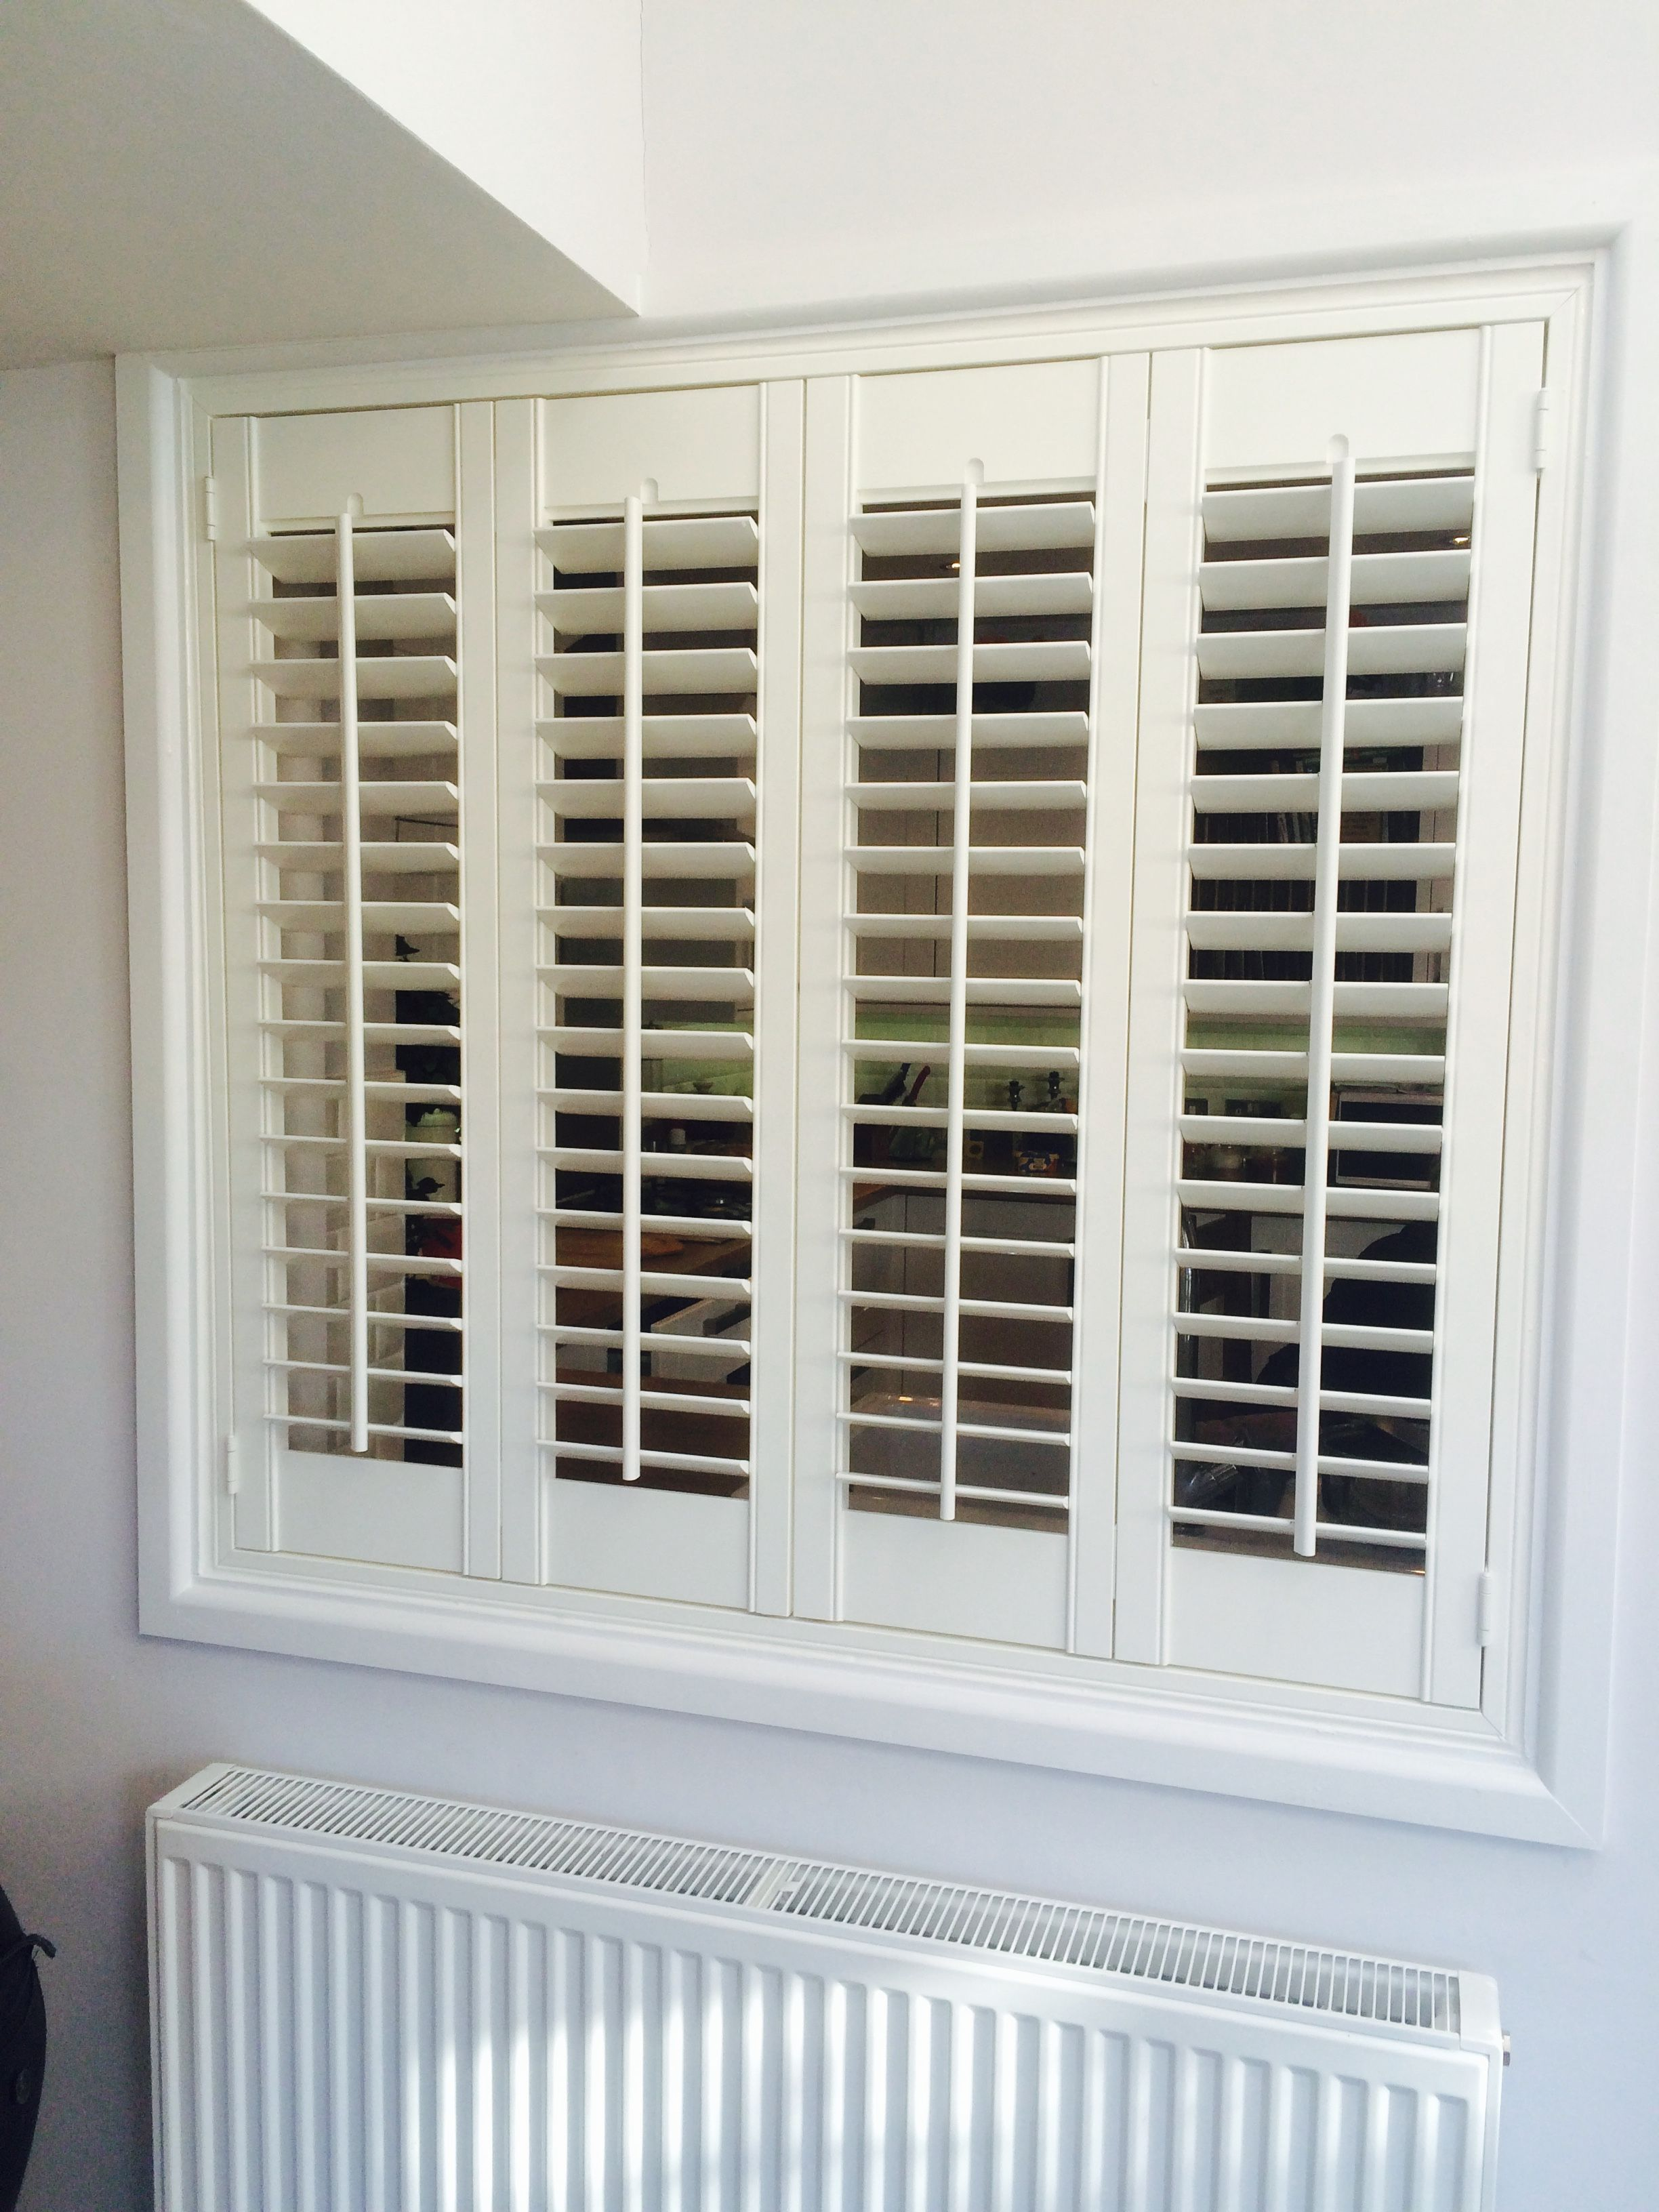 This shutter was used to fill an internal space / serving hatch ...